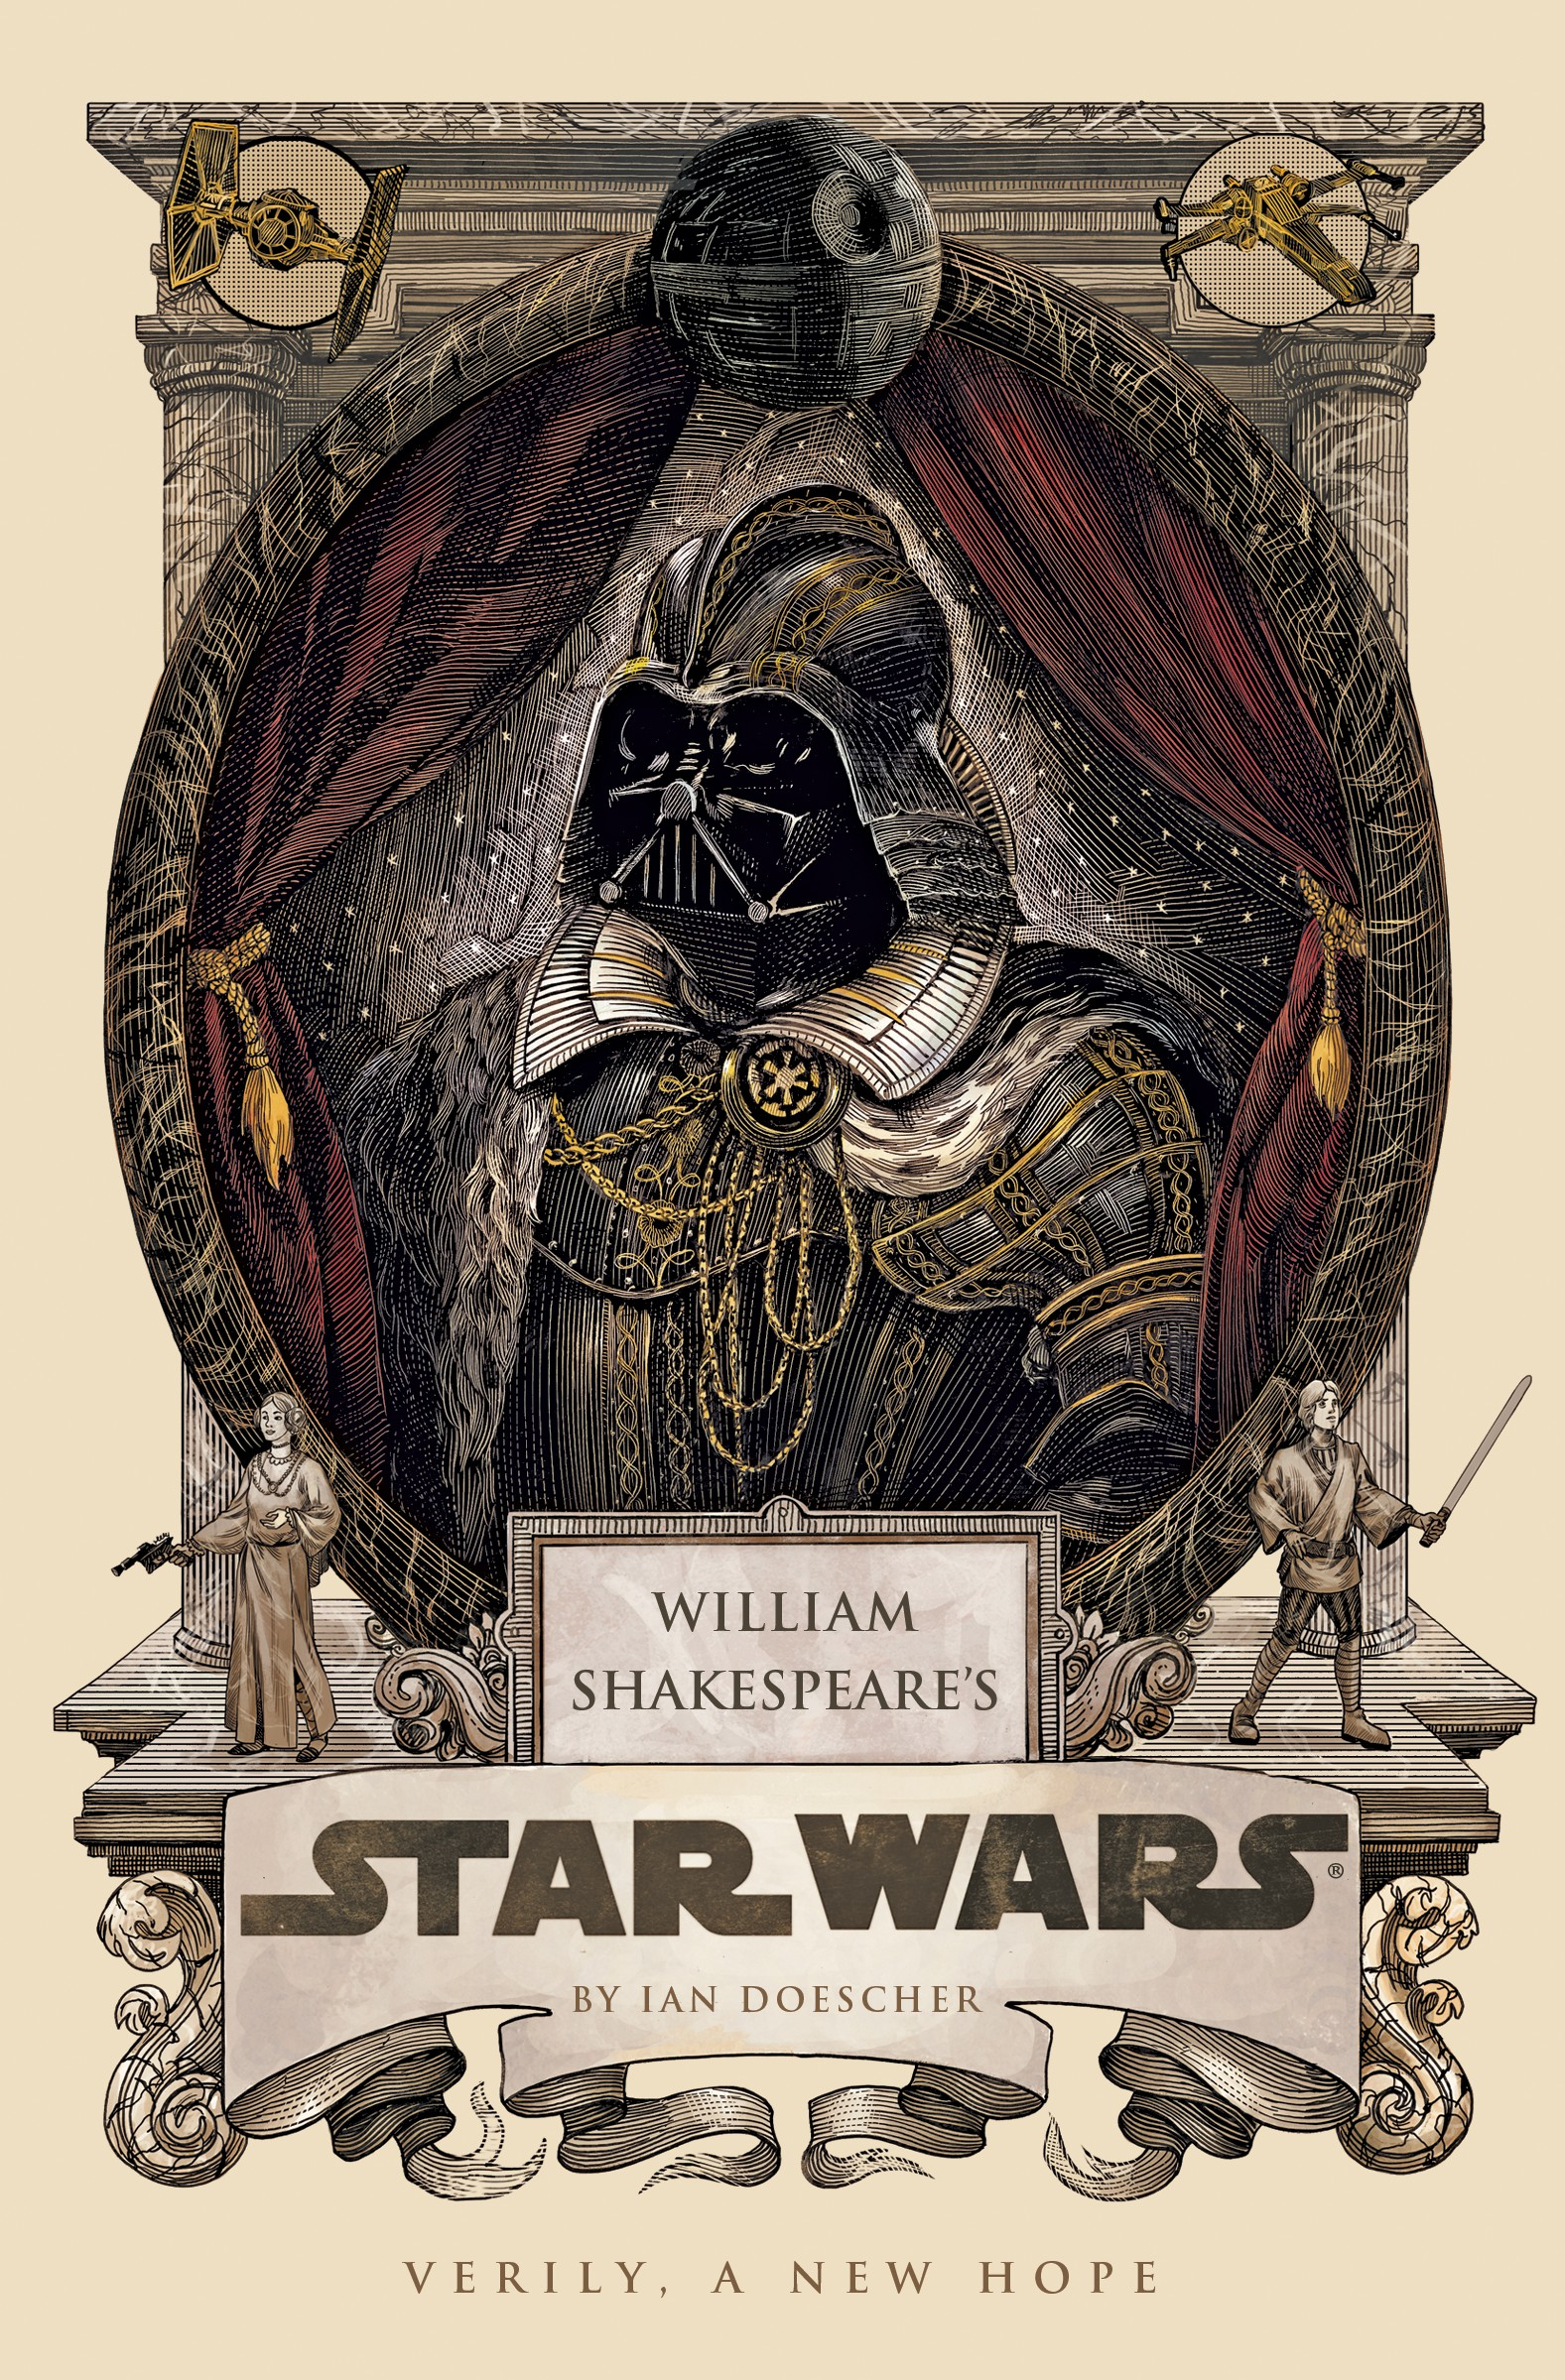 IMAGE(https://vignette.wikia.nocookie.net/starwars/images/b/b7/Shakespeare_SW.jpg/revision/latest?cb=20130427064742)